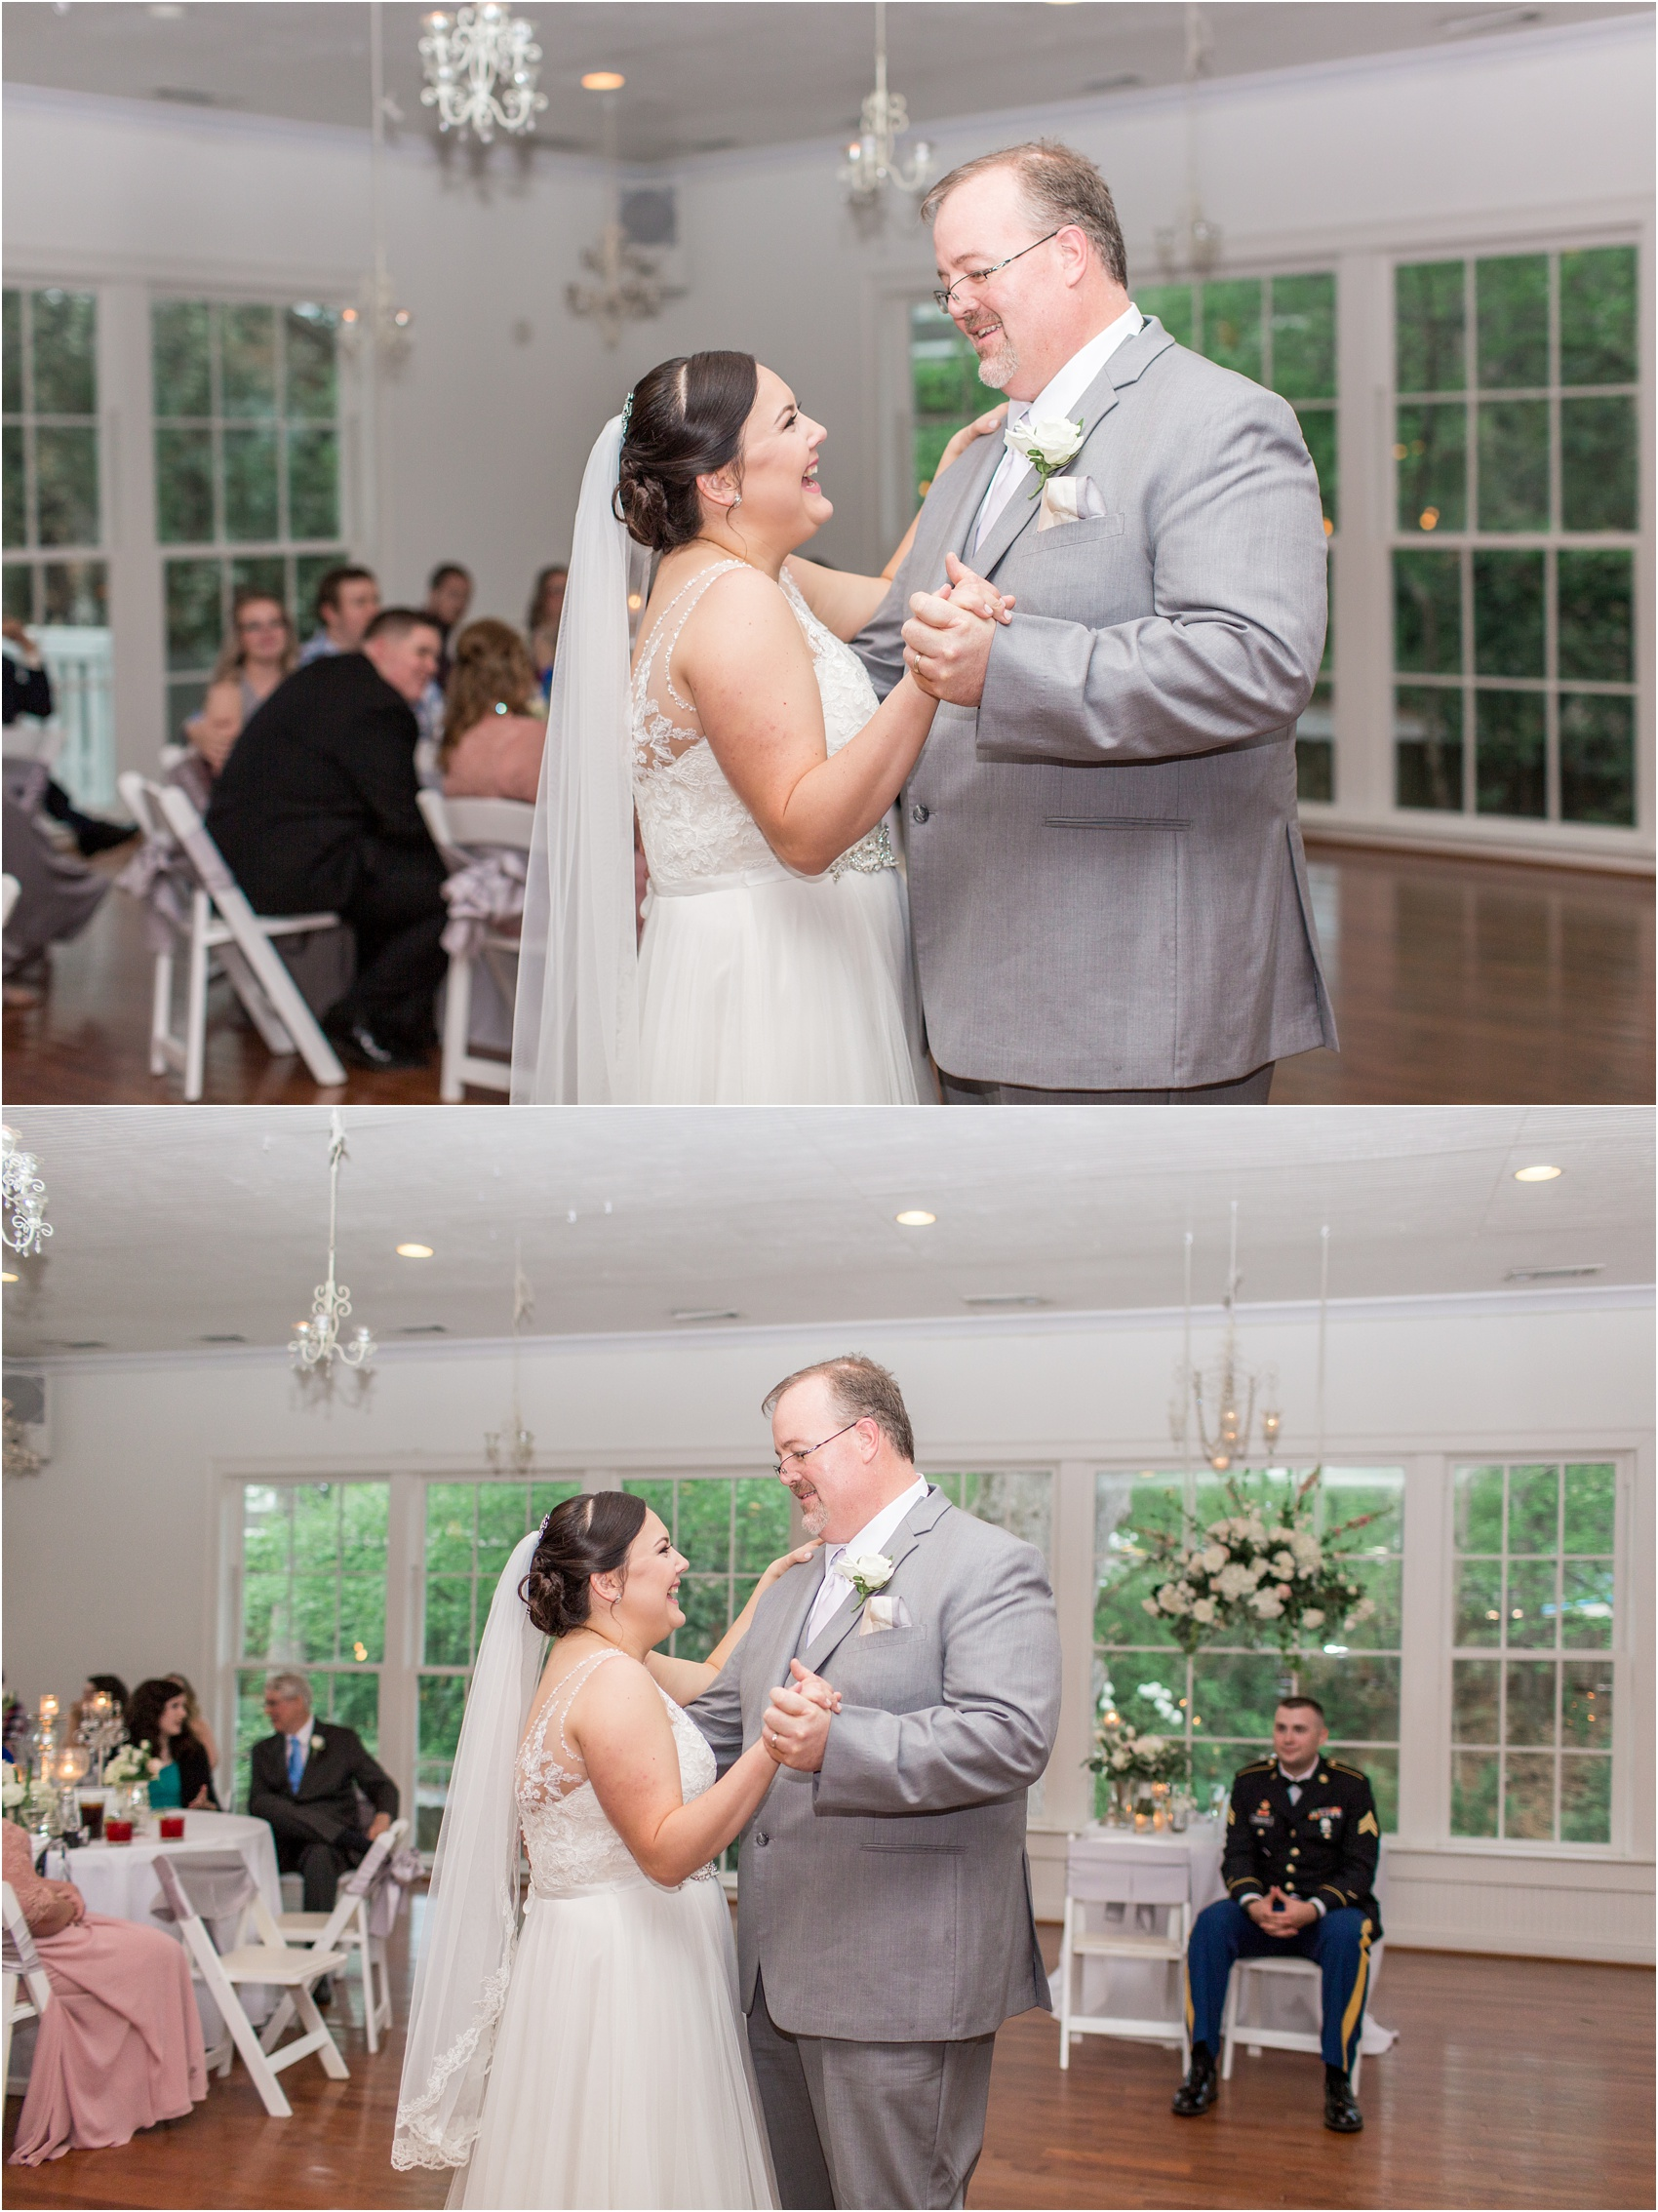 Savannah Eve Photography- Newton Wedding- Blog-120.jpg